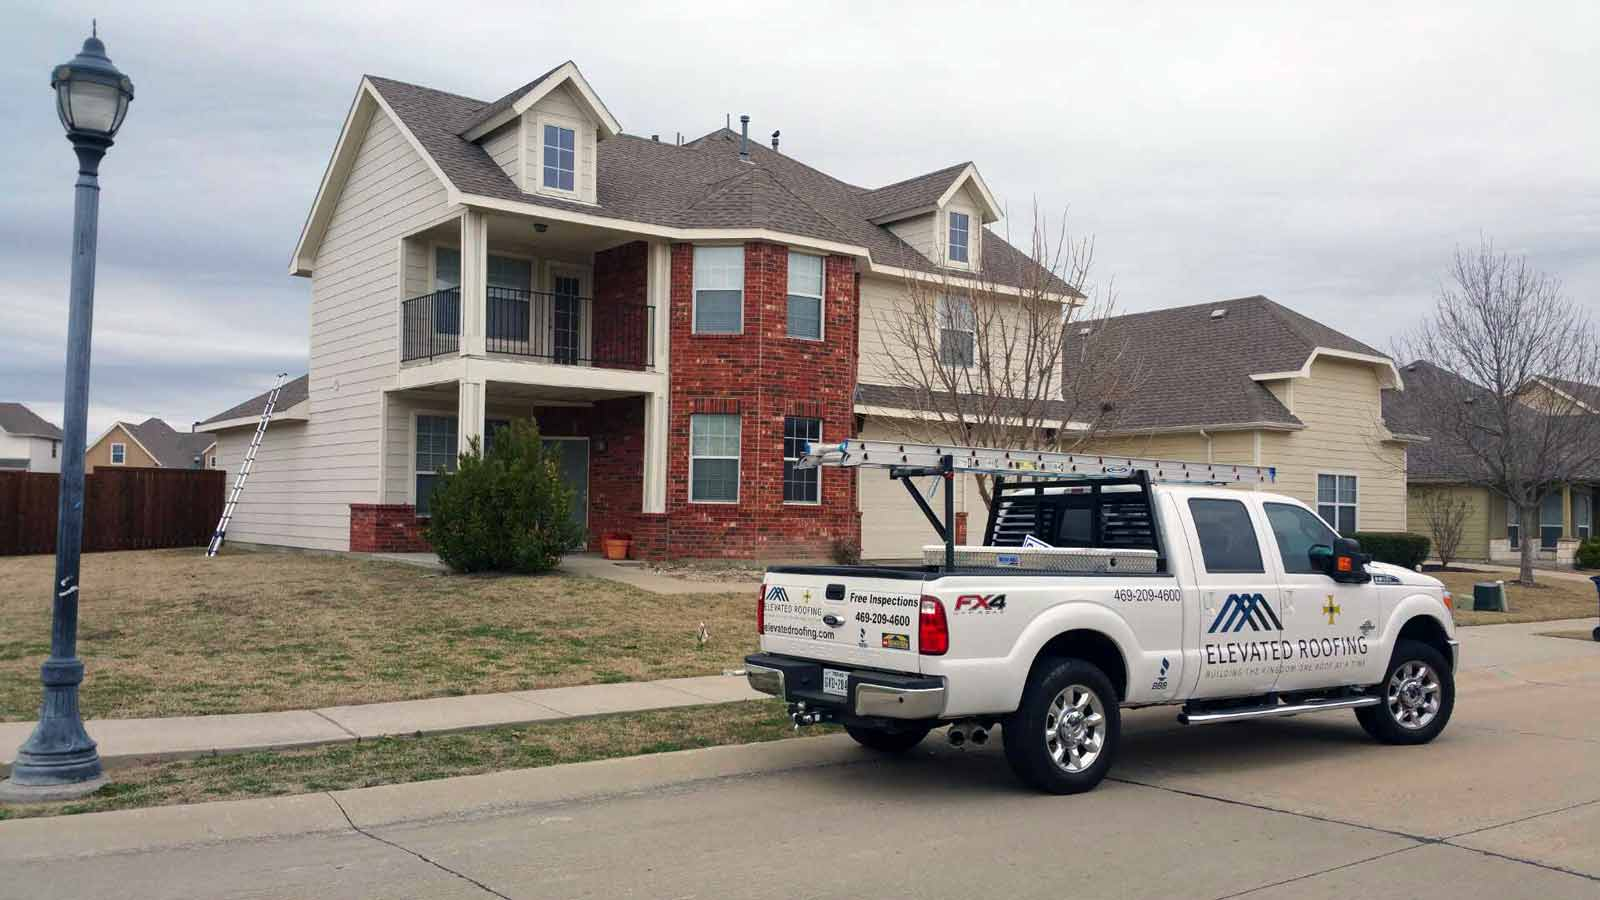 Roof Repairs in Garland, TX | Elevated Roofing